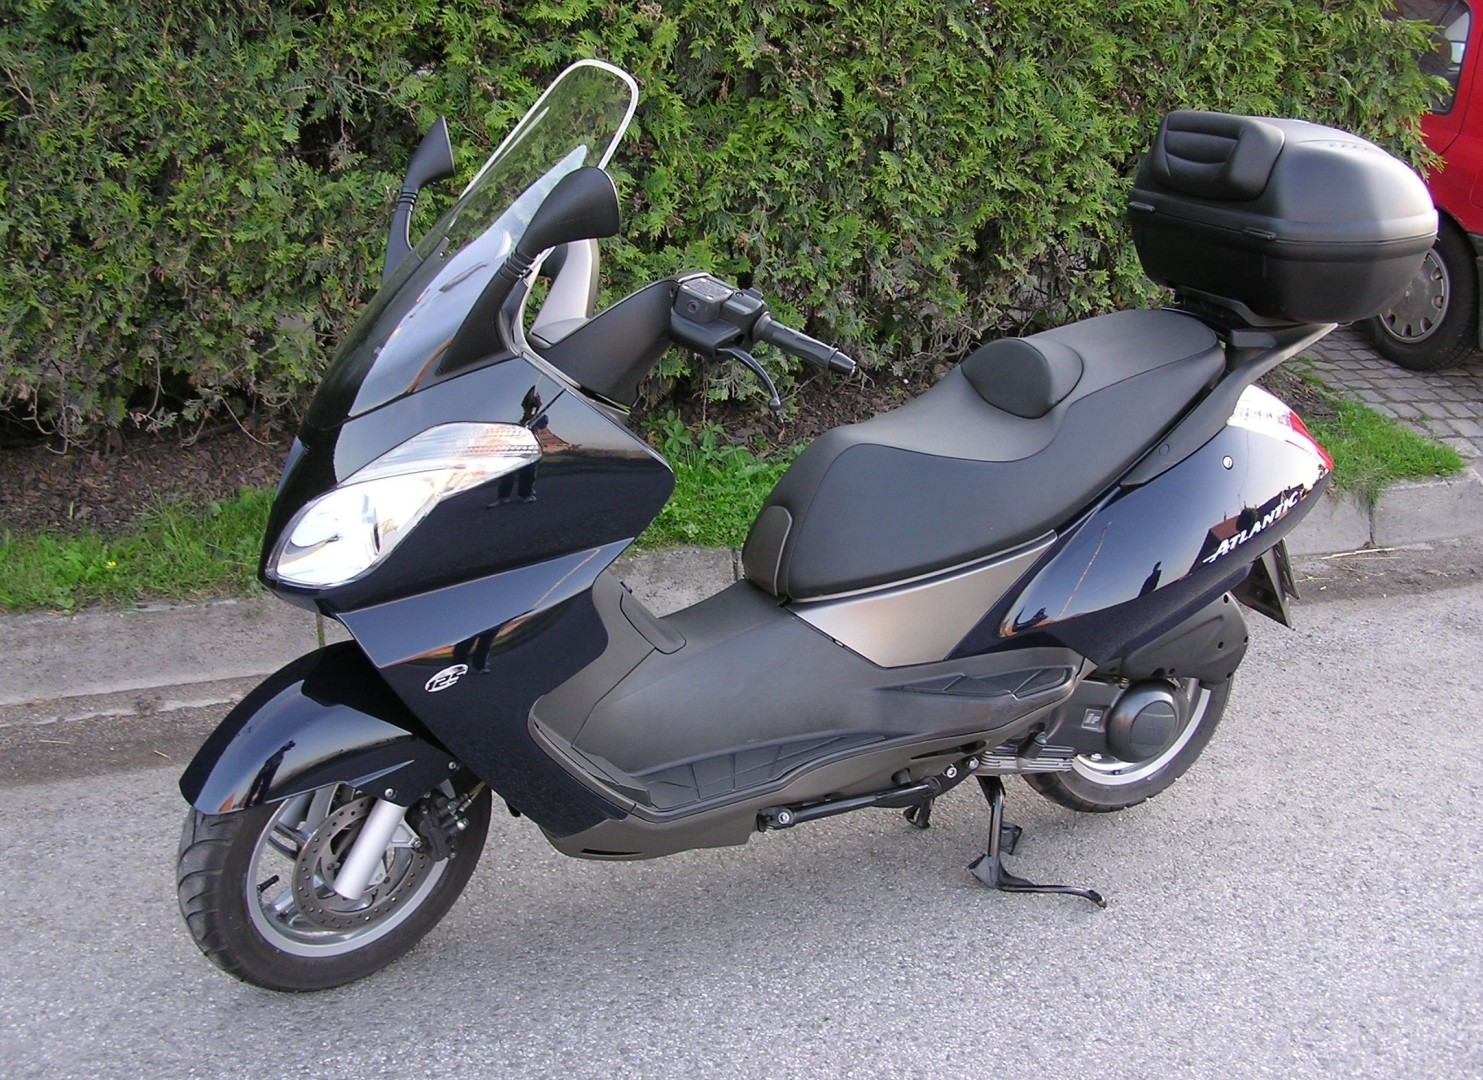 aprilia atlantic 125 specs 2002 2003 autoevolution. Black Bedroom Furniture Sets. Home Design Ideas